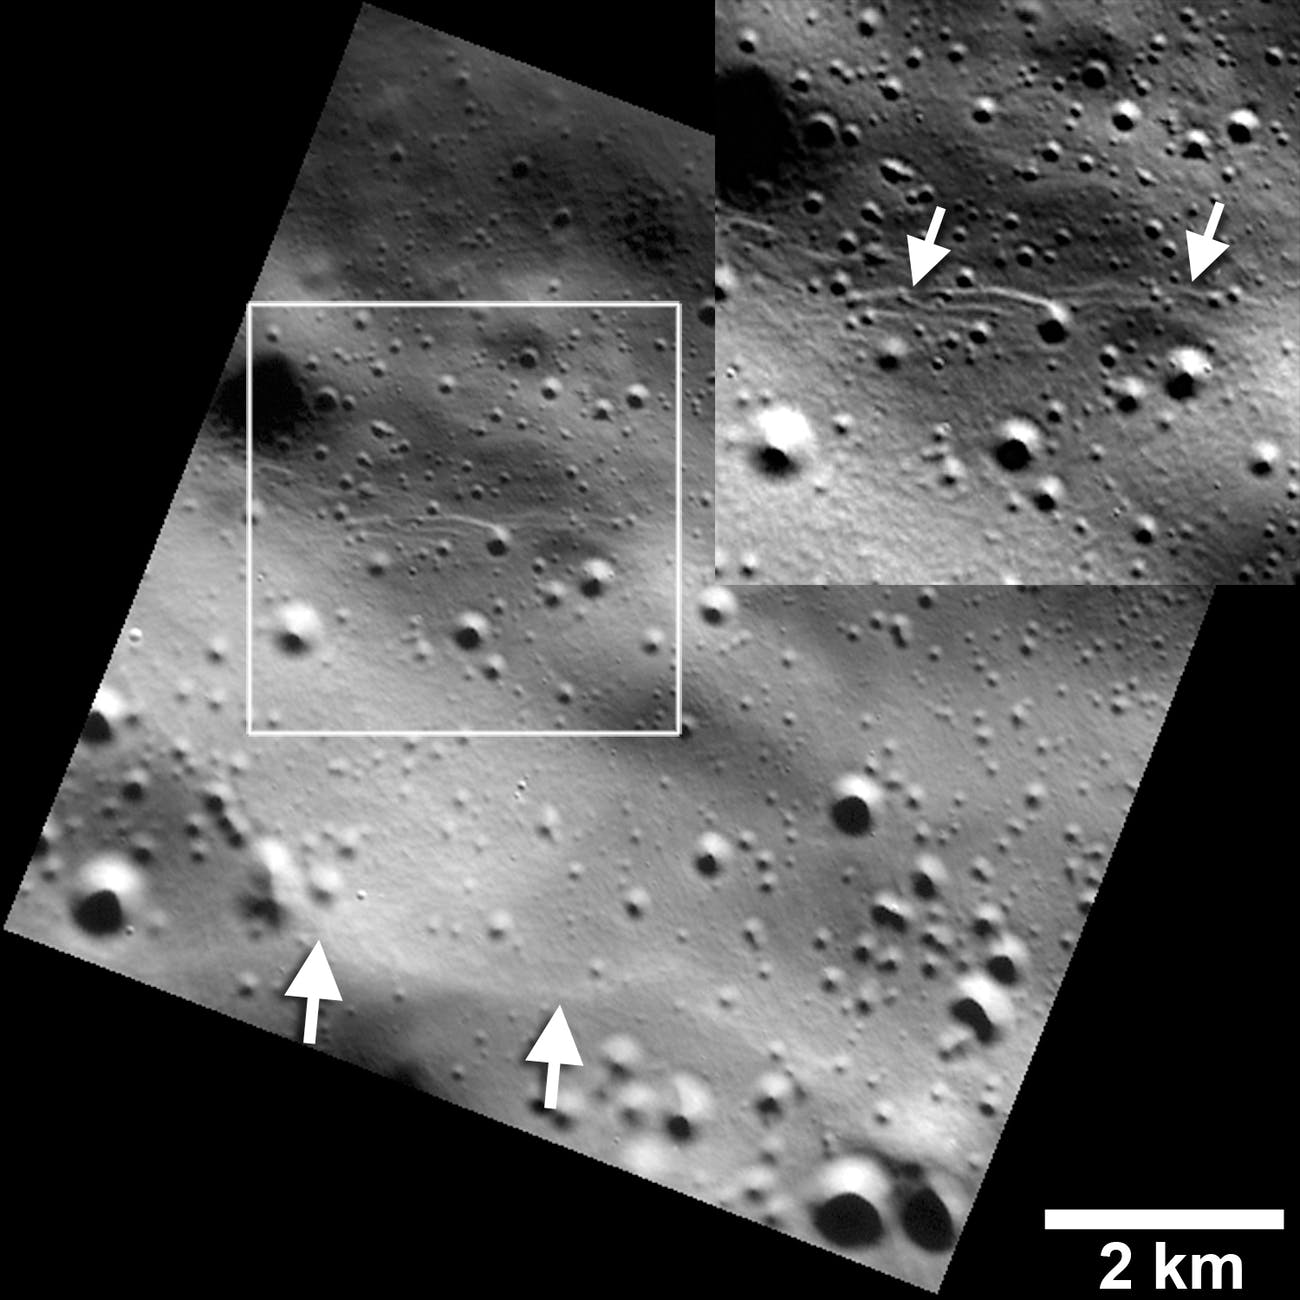 NASA Messenger photo of Mercury shows craters and fault lines.